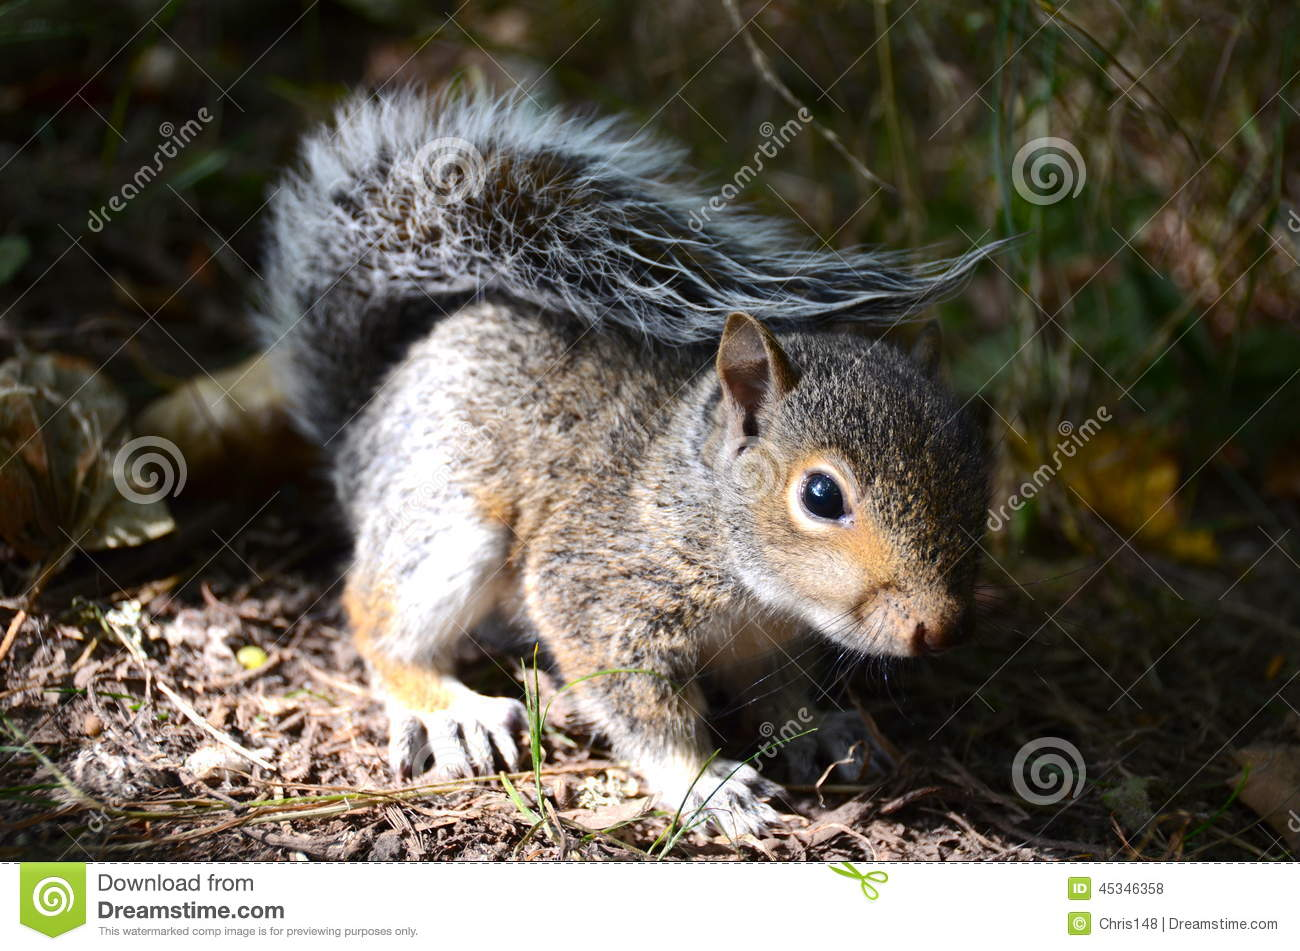 A baby grey squirrel